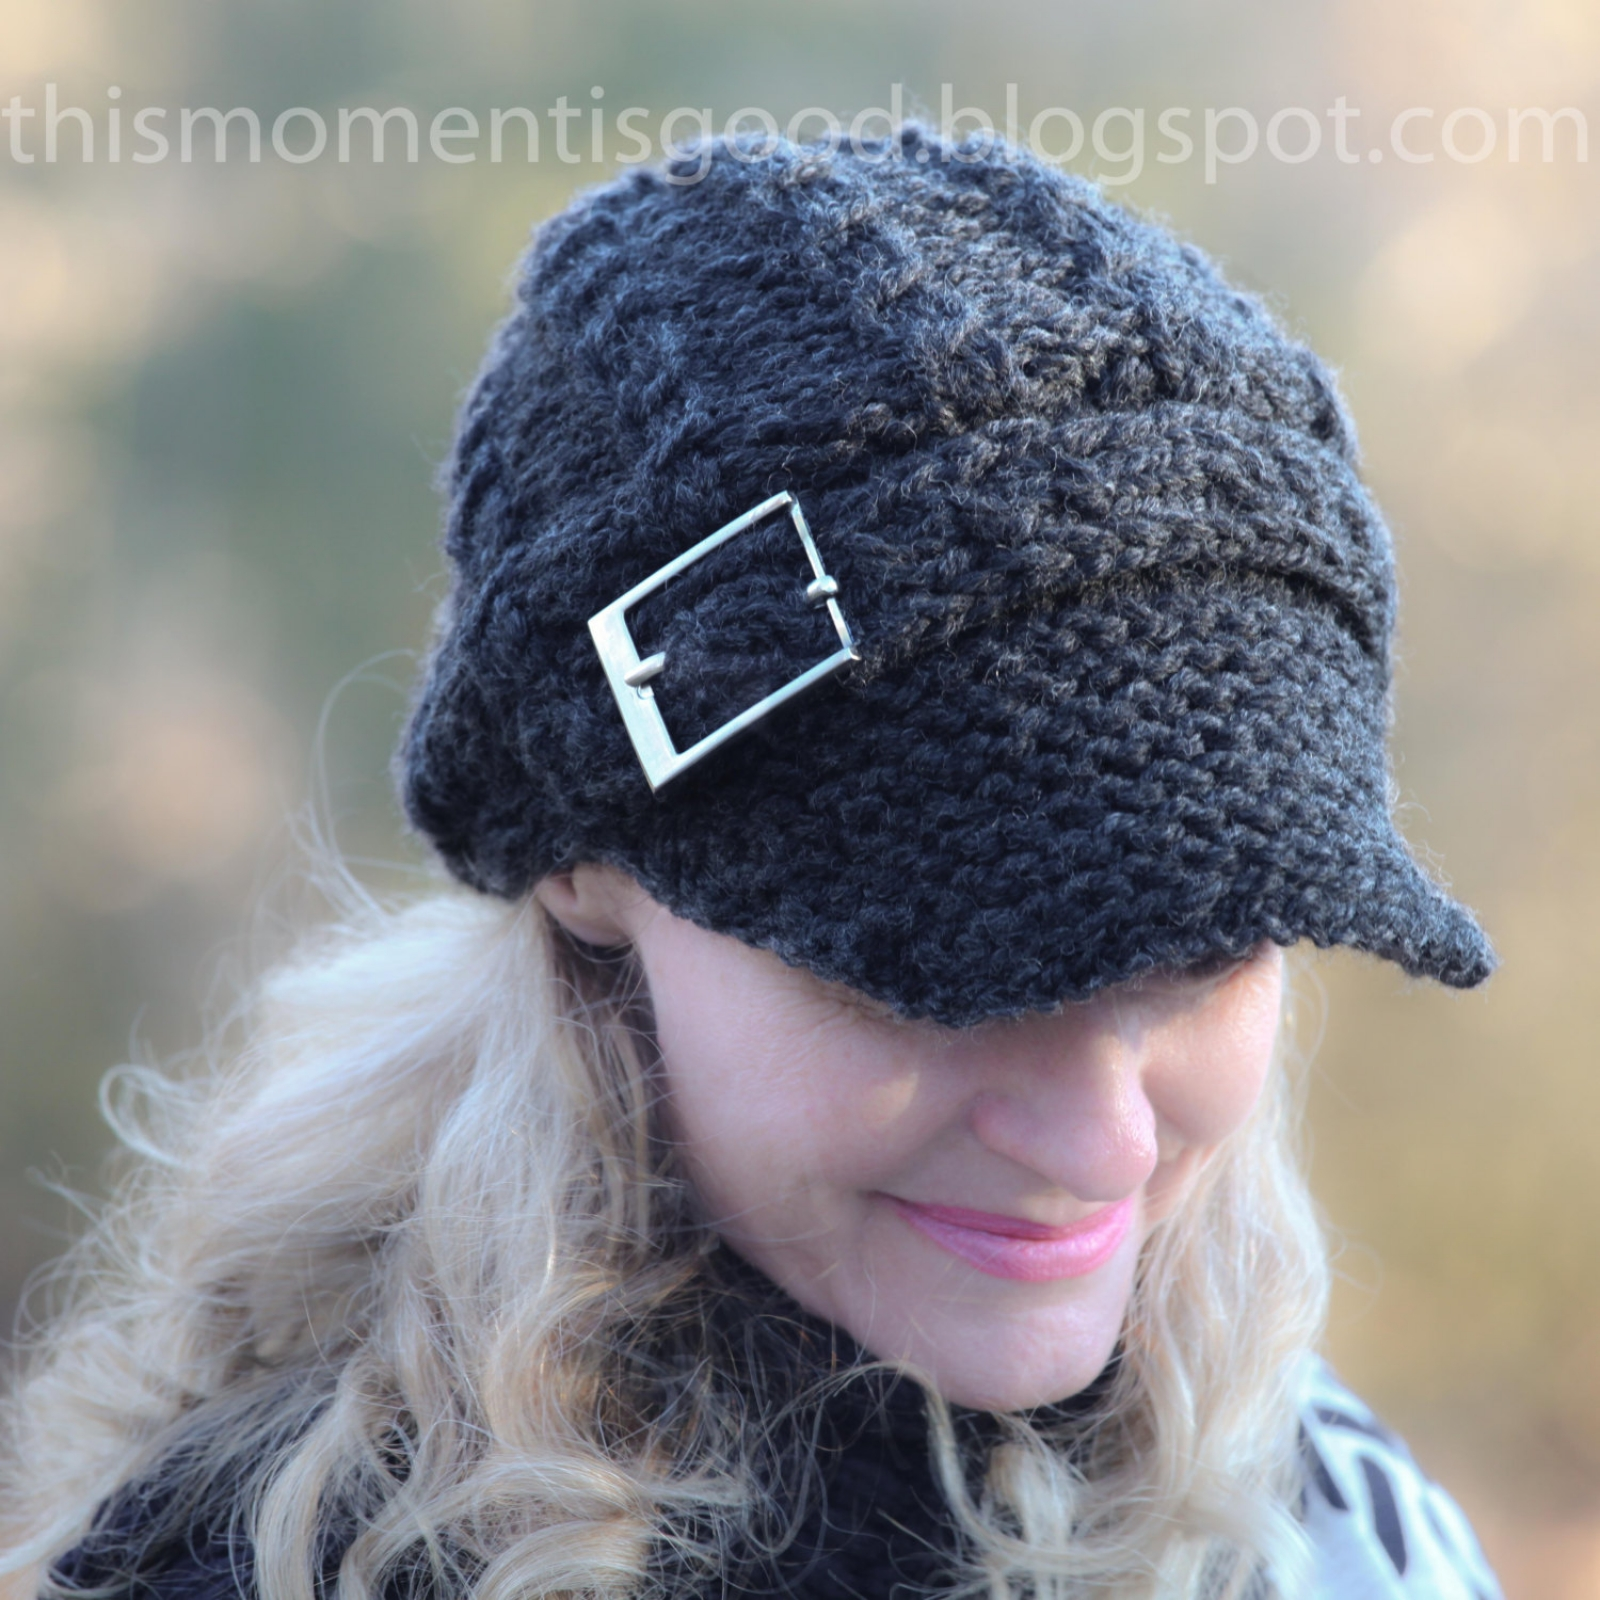 Loom Knit Newsboy Cap with Mock Cables and Buckle PATTERN  Stylish ... 40791eab39f